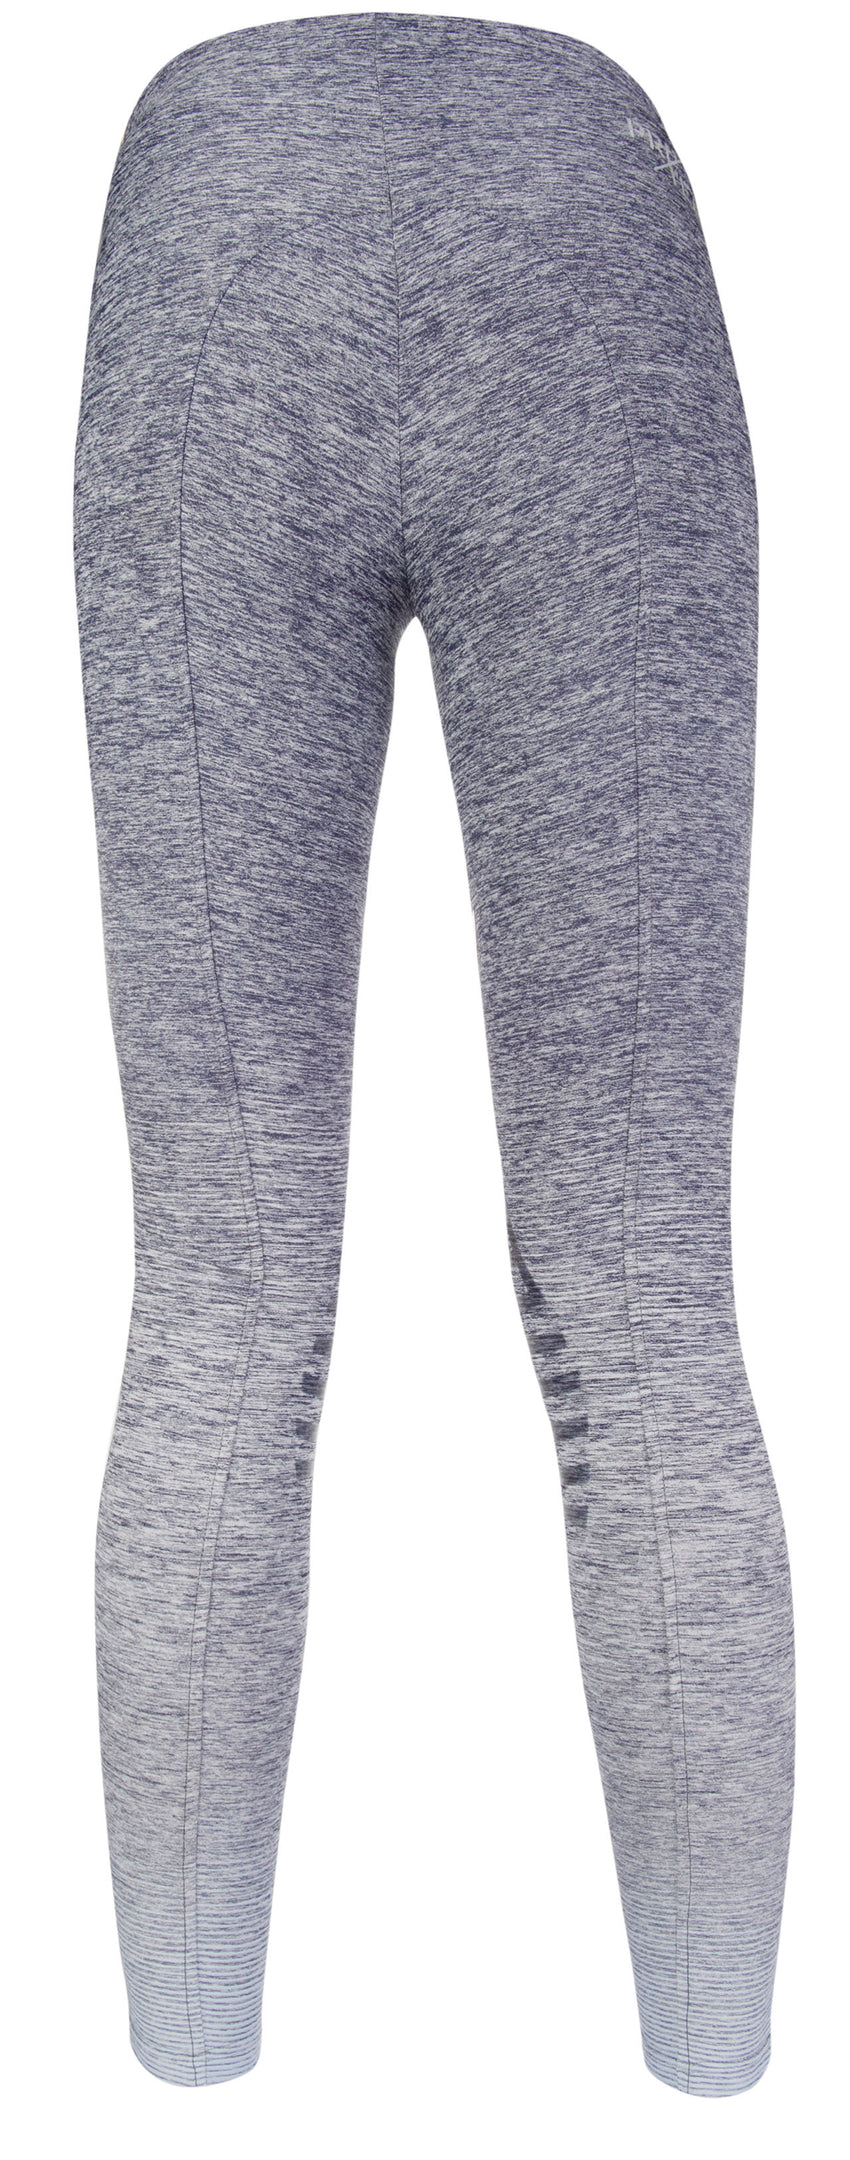 HKM Riding Leggings